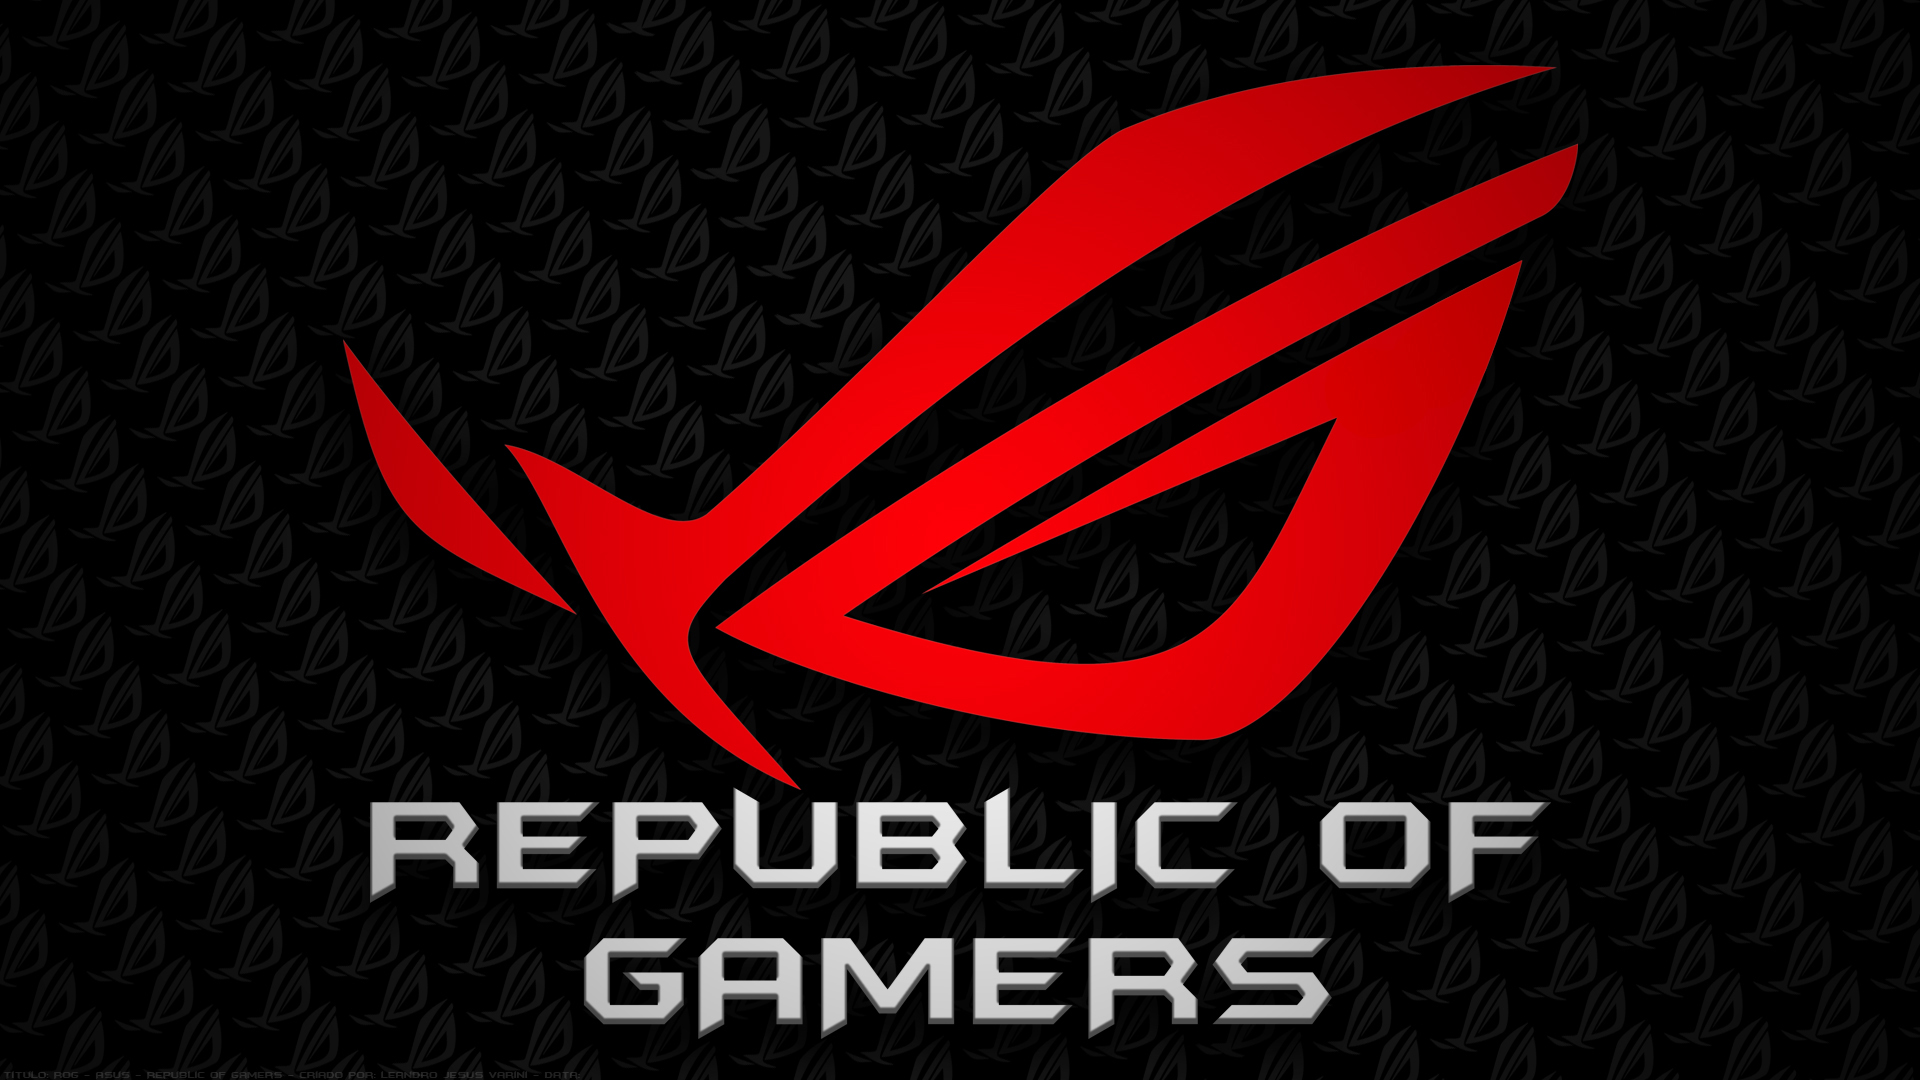 Wallpaper competition vote for your favorite republic - Asus gamers republic wallpaper ...